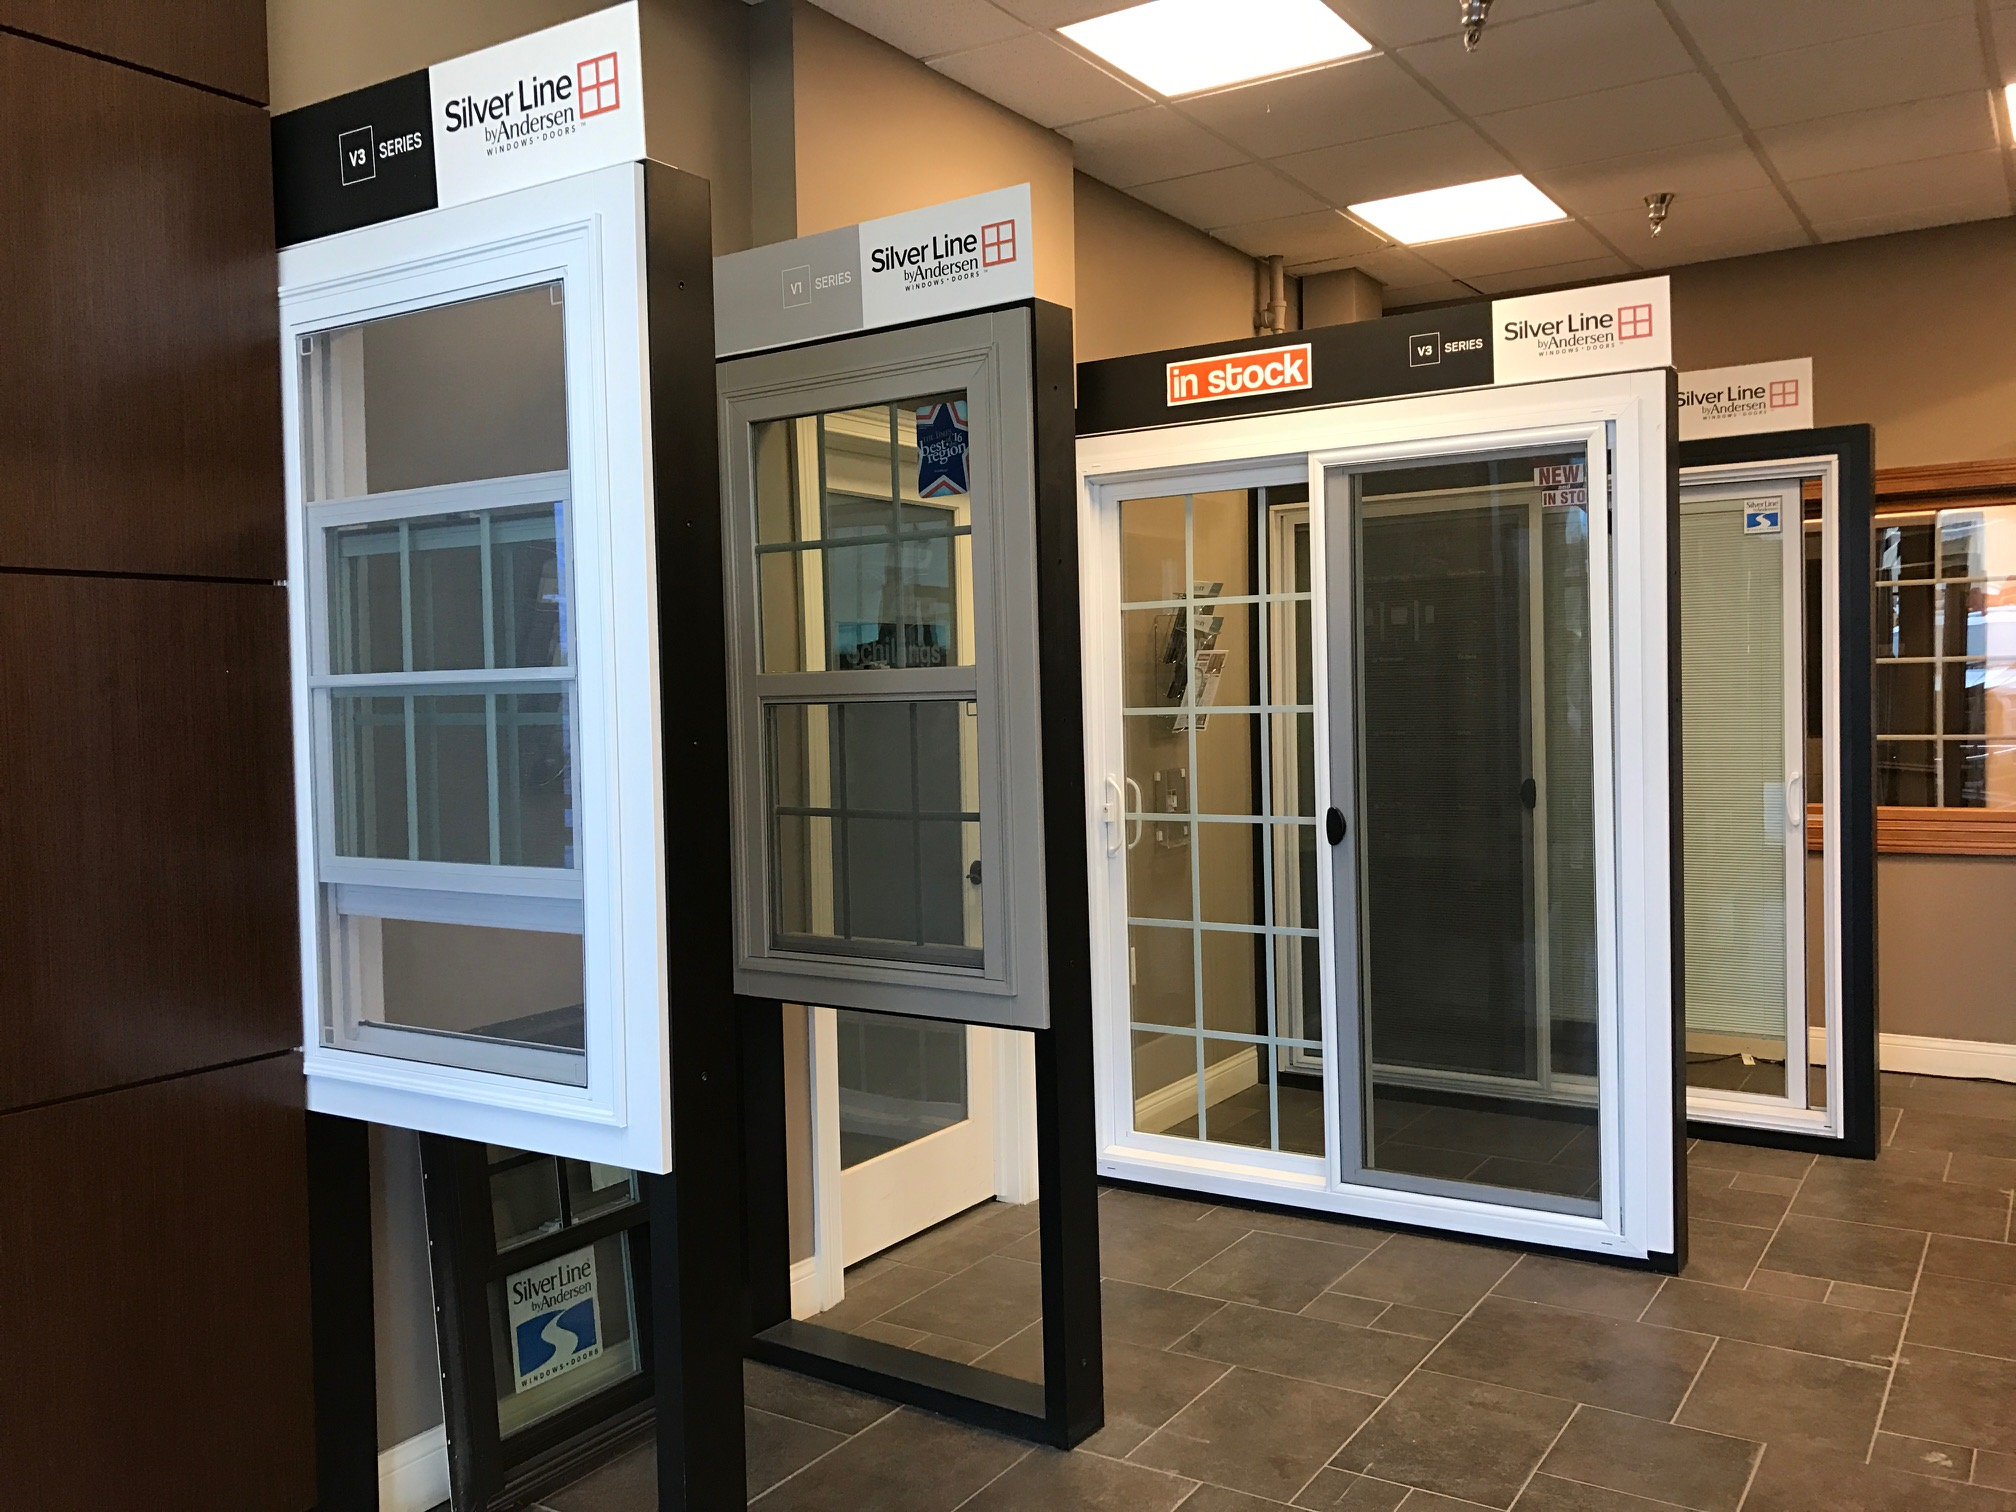 We have a full selection of wood composite (Fibrex) vinyl aluminum and fiberglass windows and door options to help complete your project no matter what ... & Silver Line Windows and Doors - Schillings